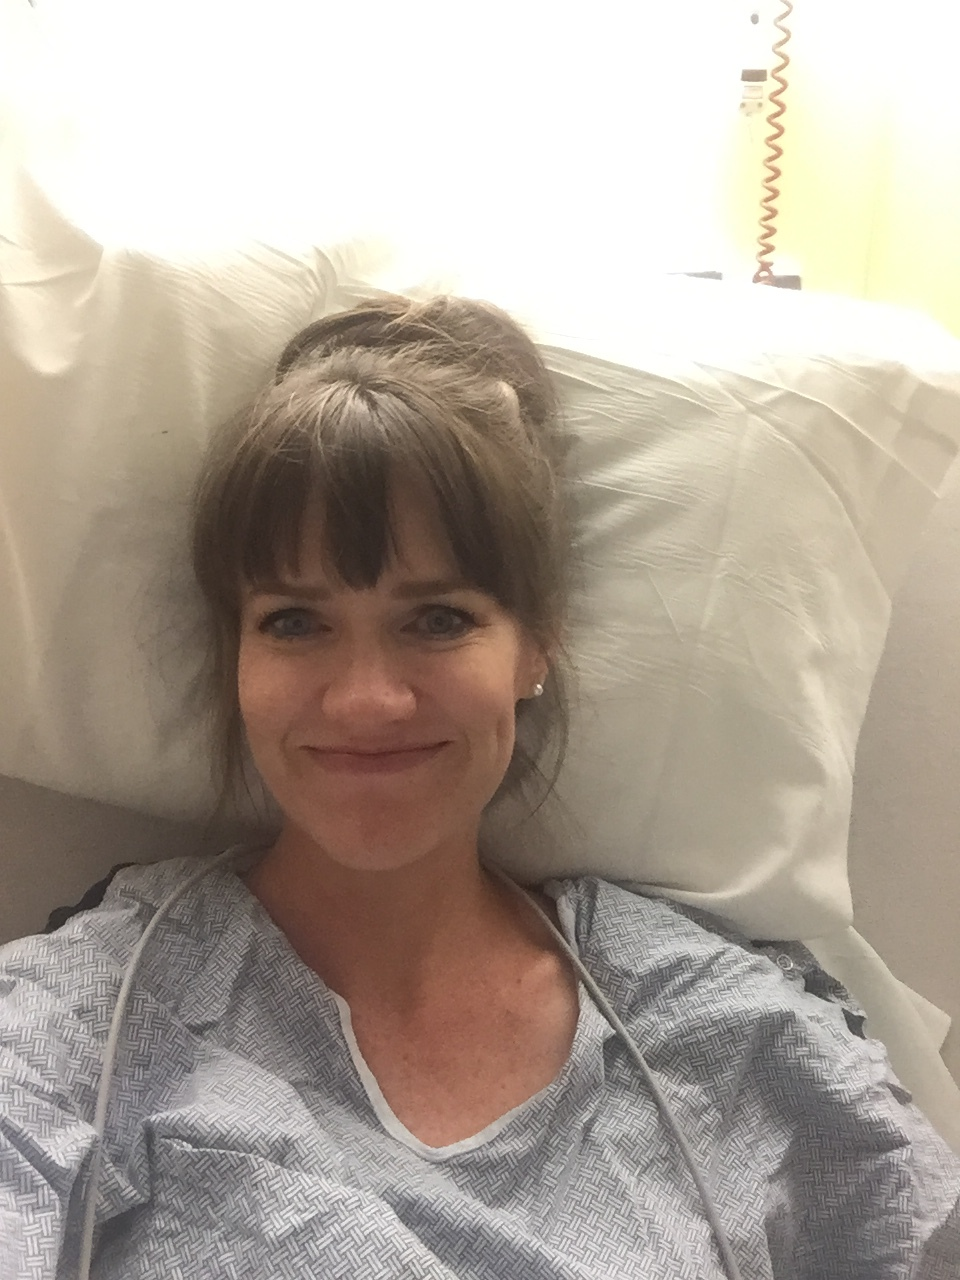 My pre-labor face! They had just hooked up my IV and given me meds to start my body into labor. I had hardly slept for a week because that doggone cholestasis keeps me up at night--so I knew it was time for this babe to make his appearance!